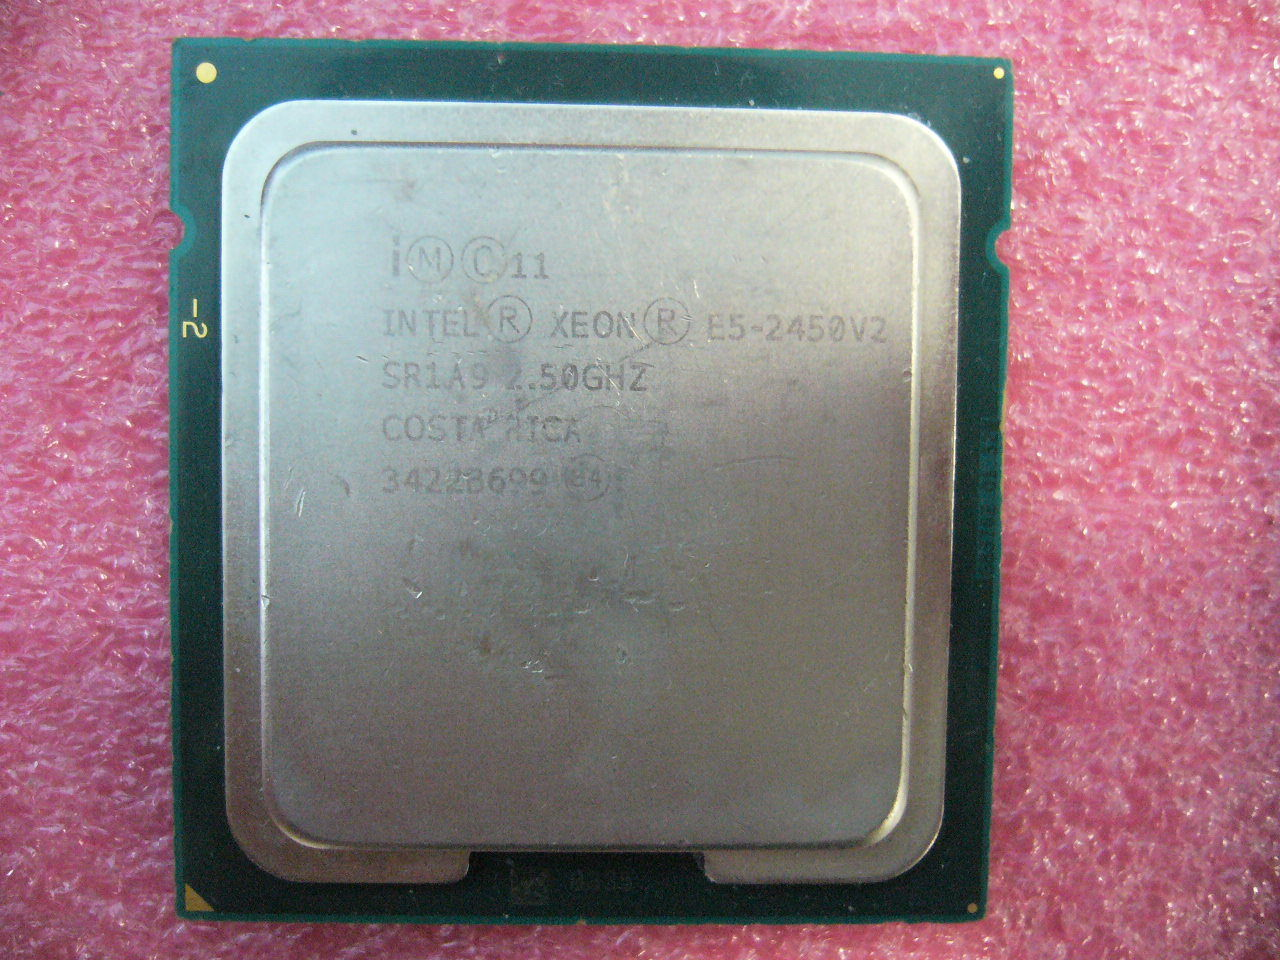 QTY 1x Intel CPU E5-2450 V2 8-Cores 2.5Ghz LGA1356 SR1A9